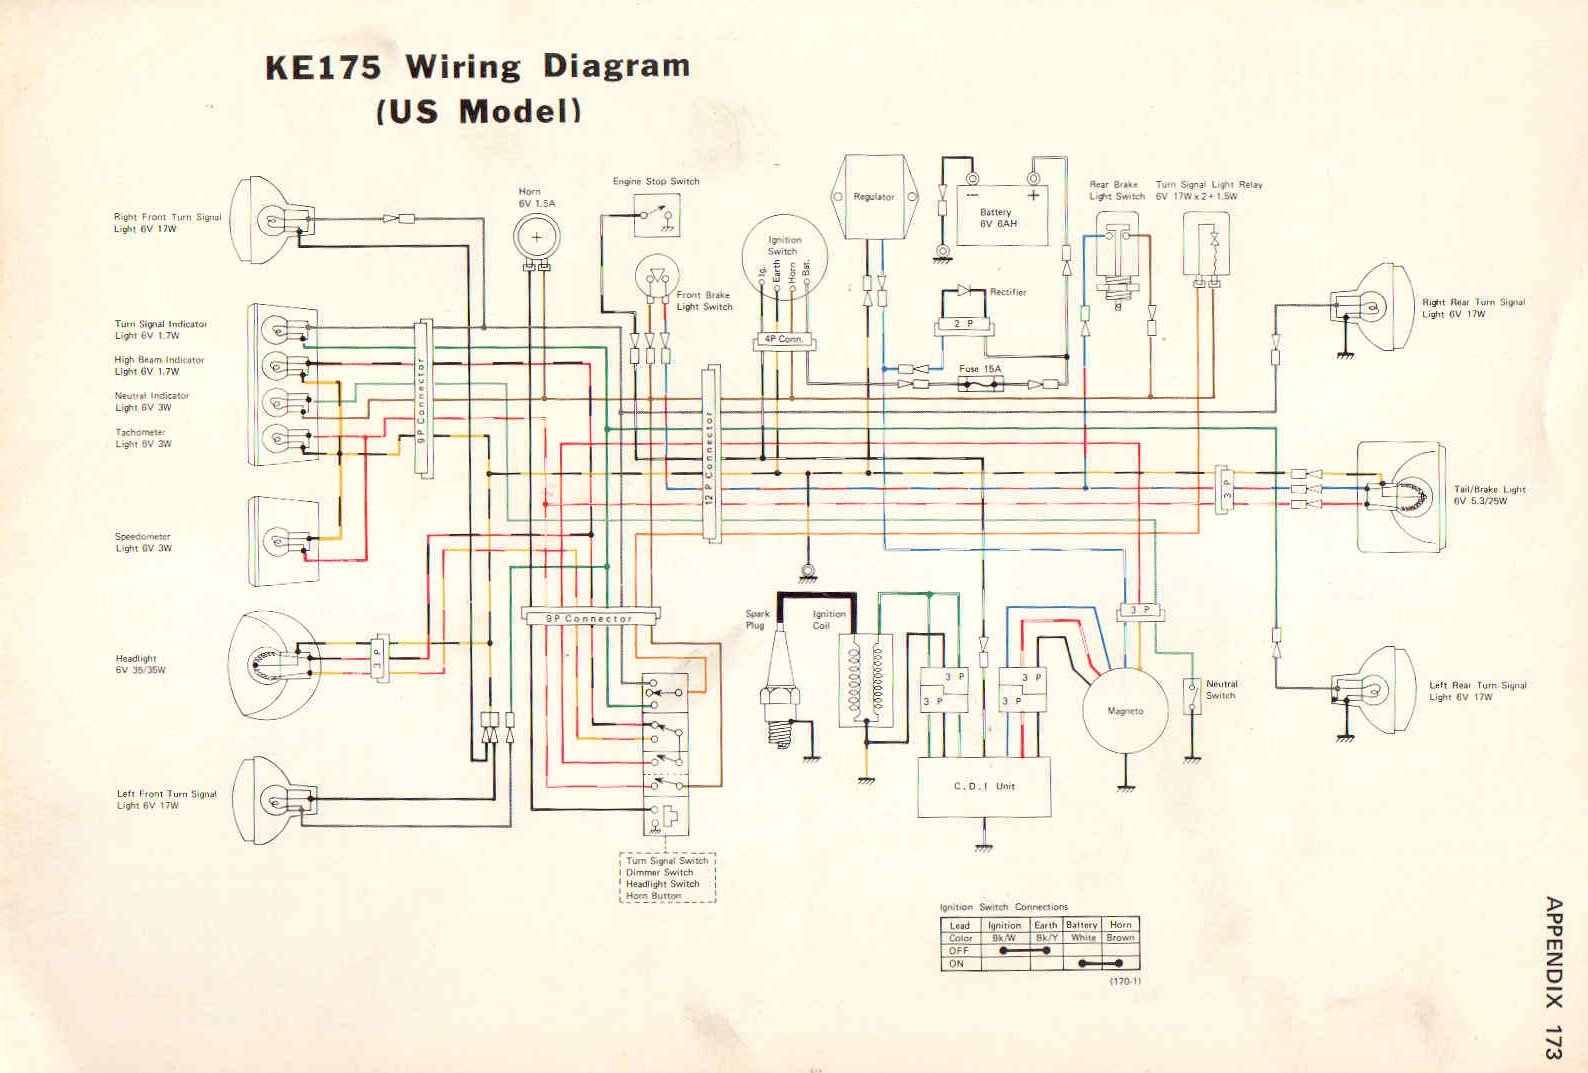 kawasaki ke175 service manual wiring diagram. Black Bedroom Furniture Sets. Home Design Ideas